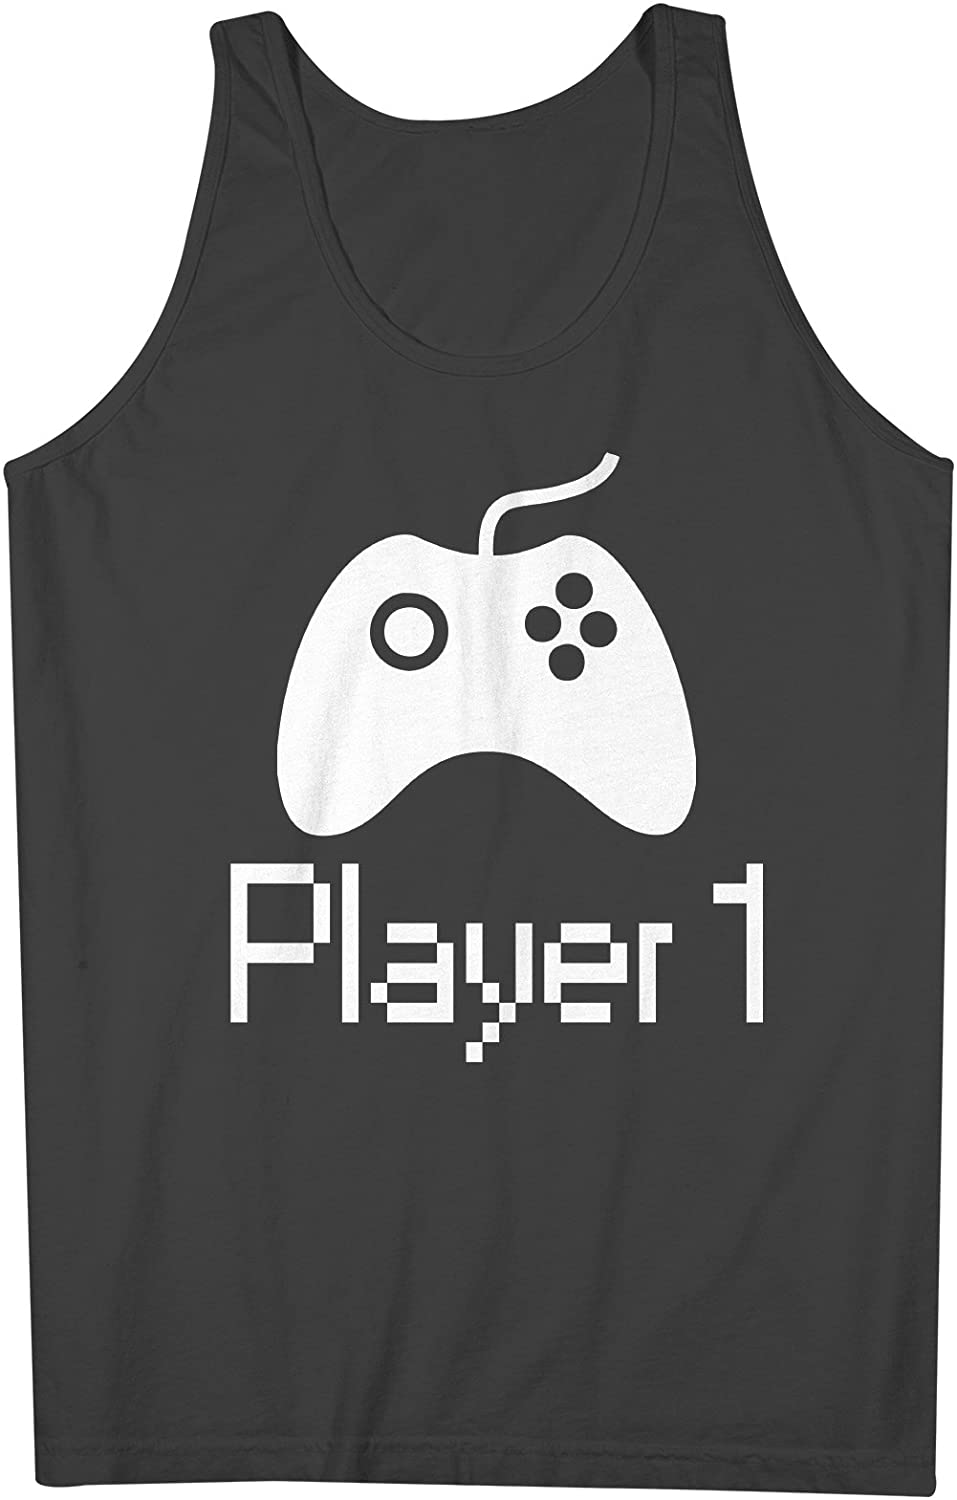 Player 1 Number Gamer Cool Console Sleeveless Xx 6014 Shirts